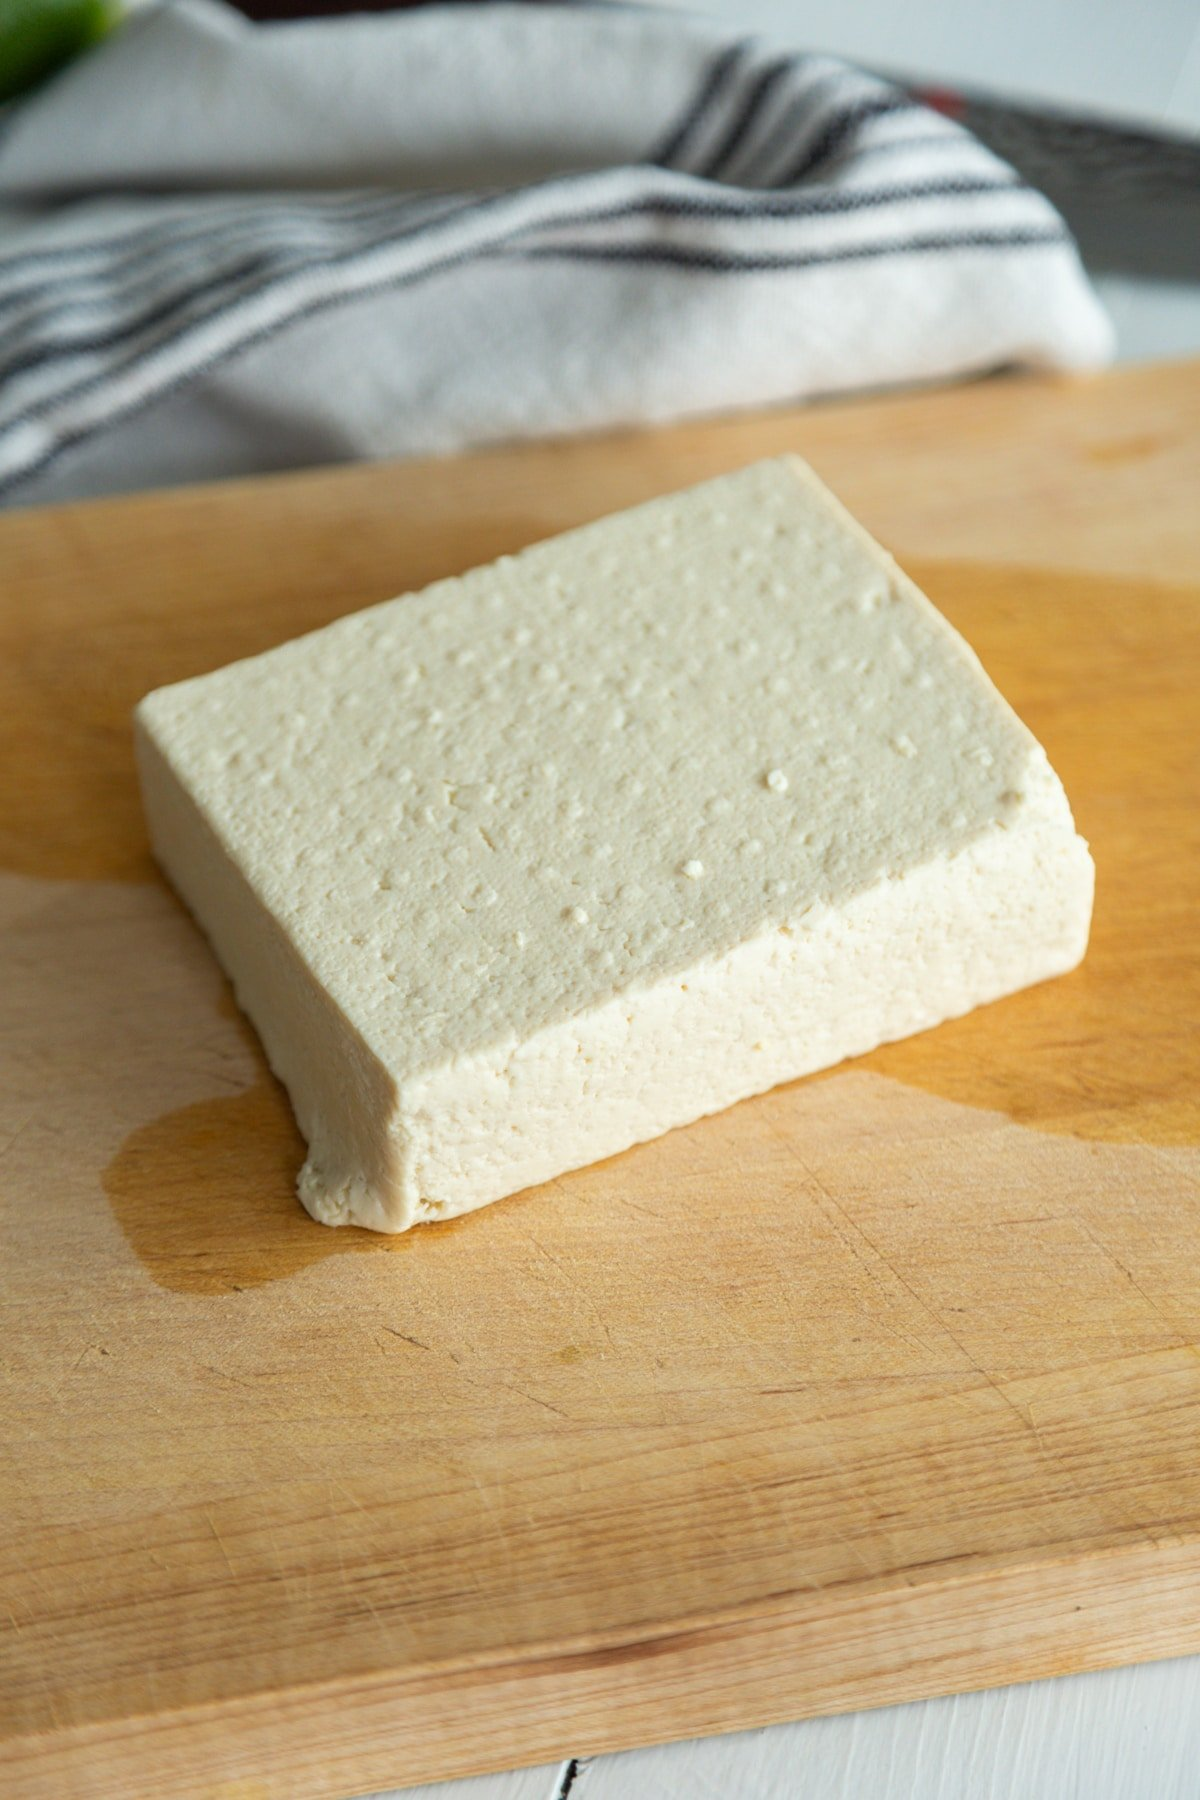 A square piece of tofu on a wooden board.